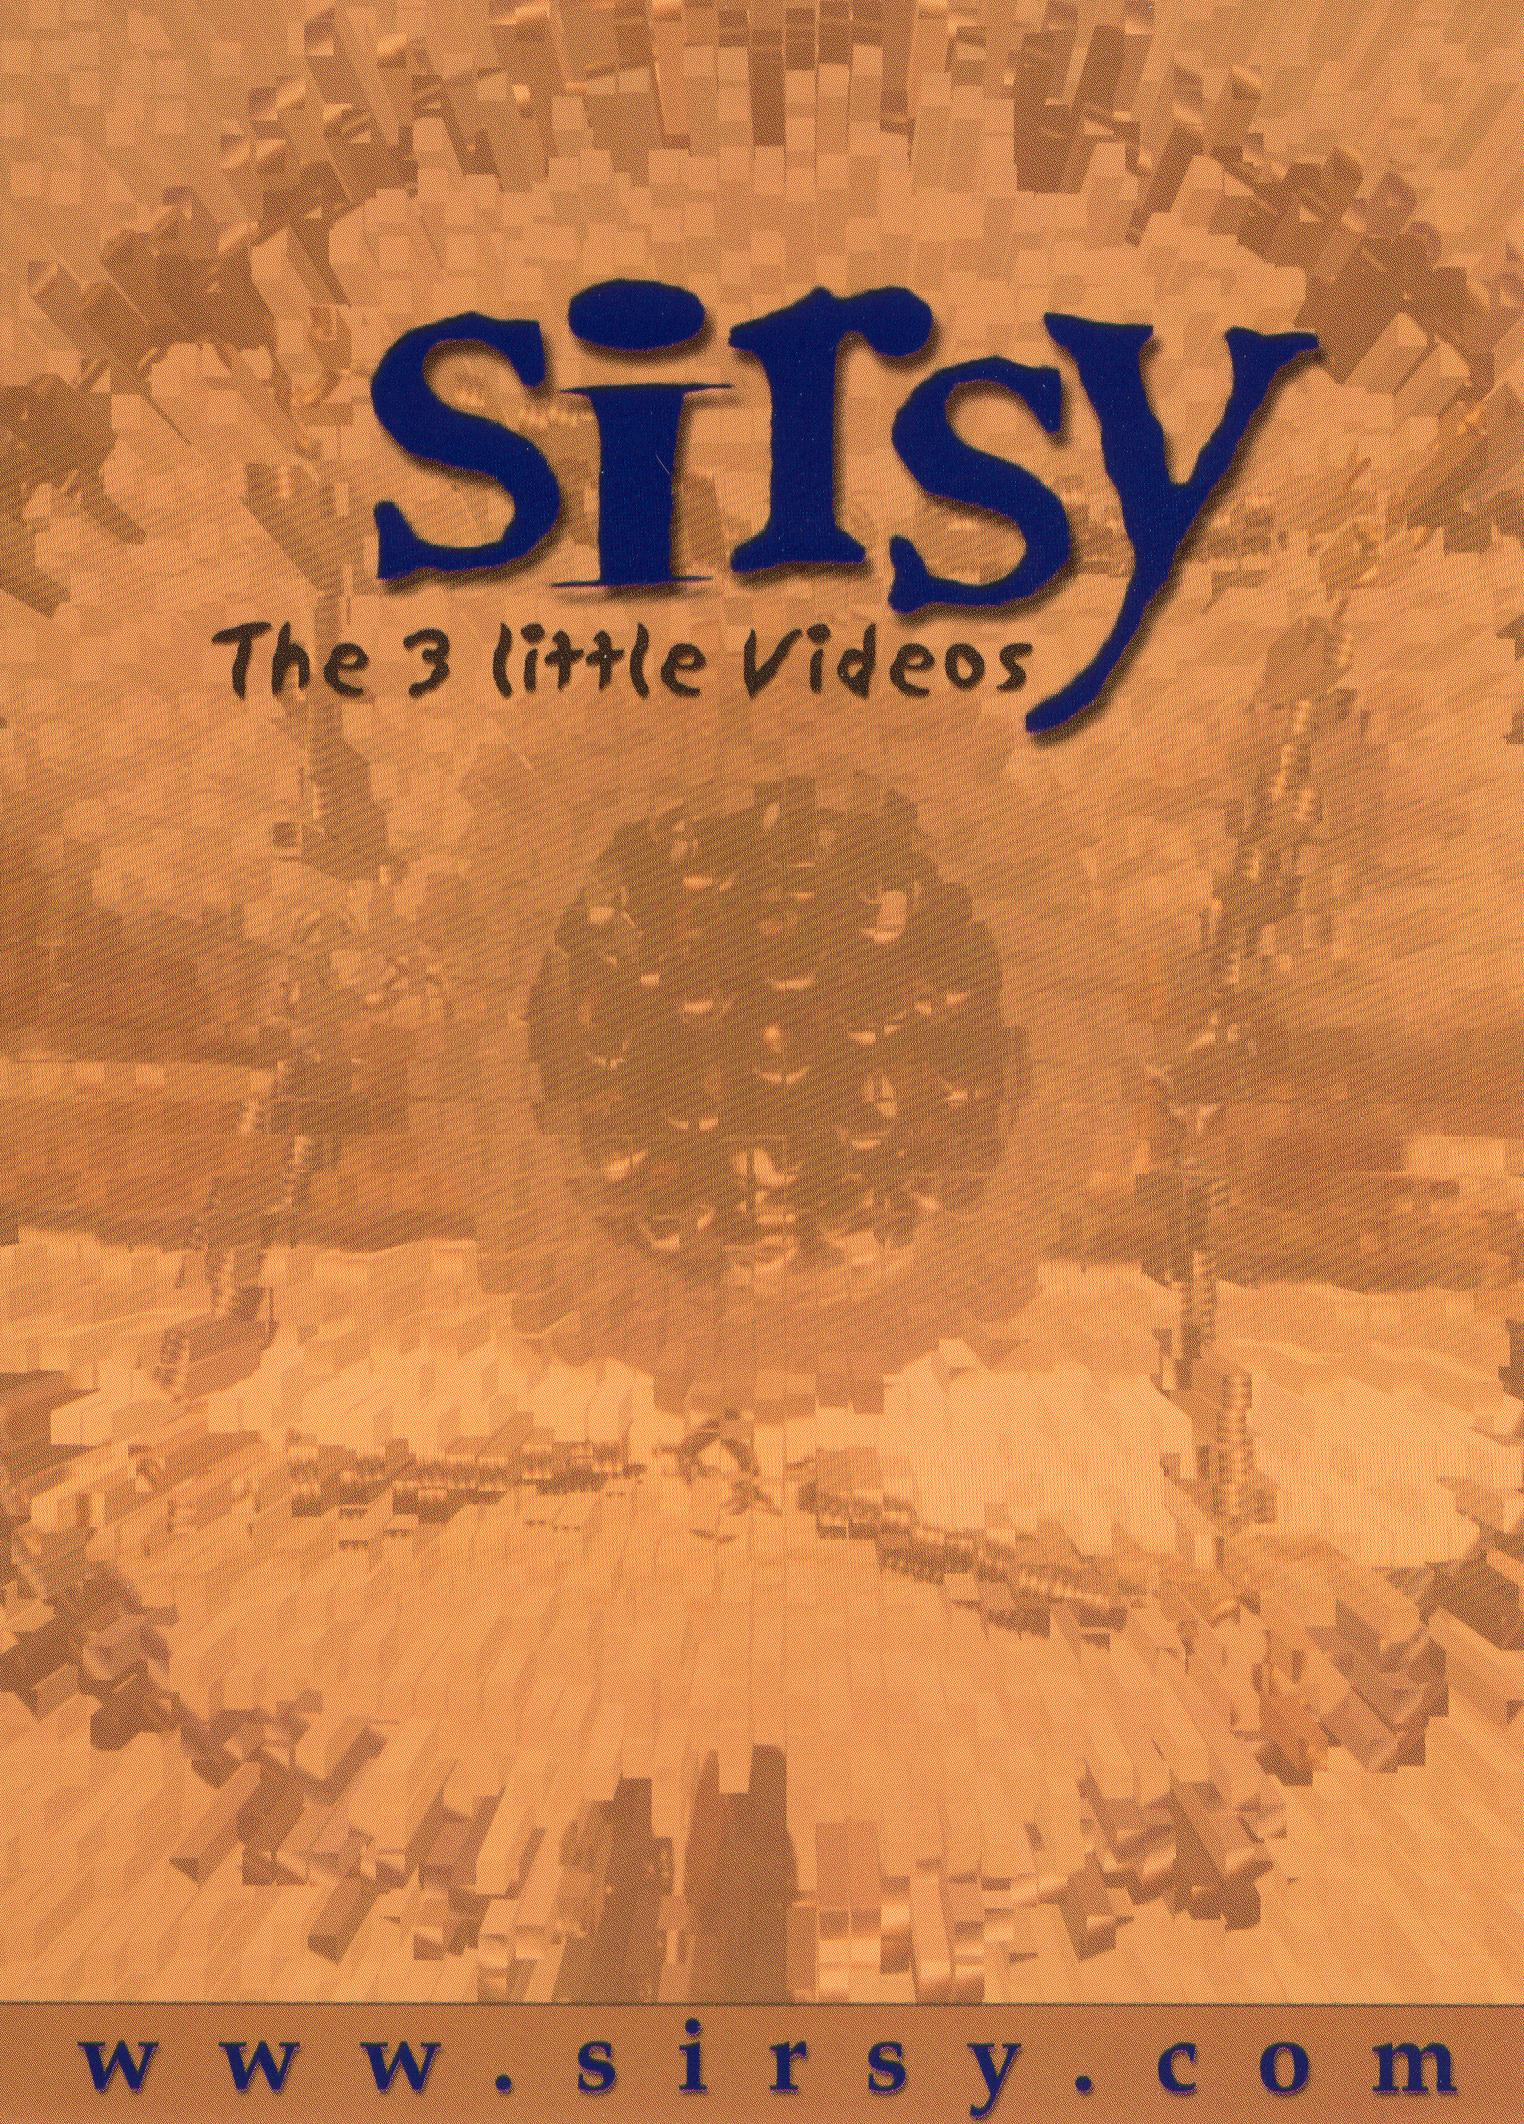 Sirsy: The 3 Little Videos